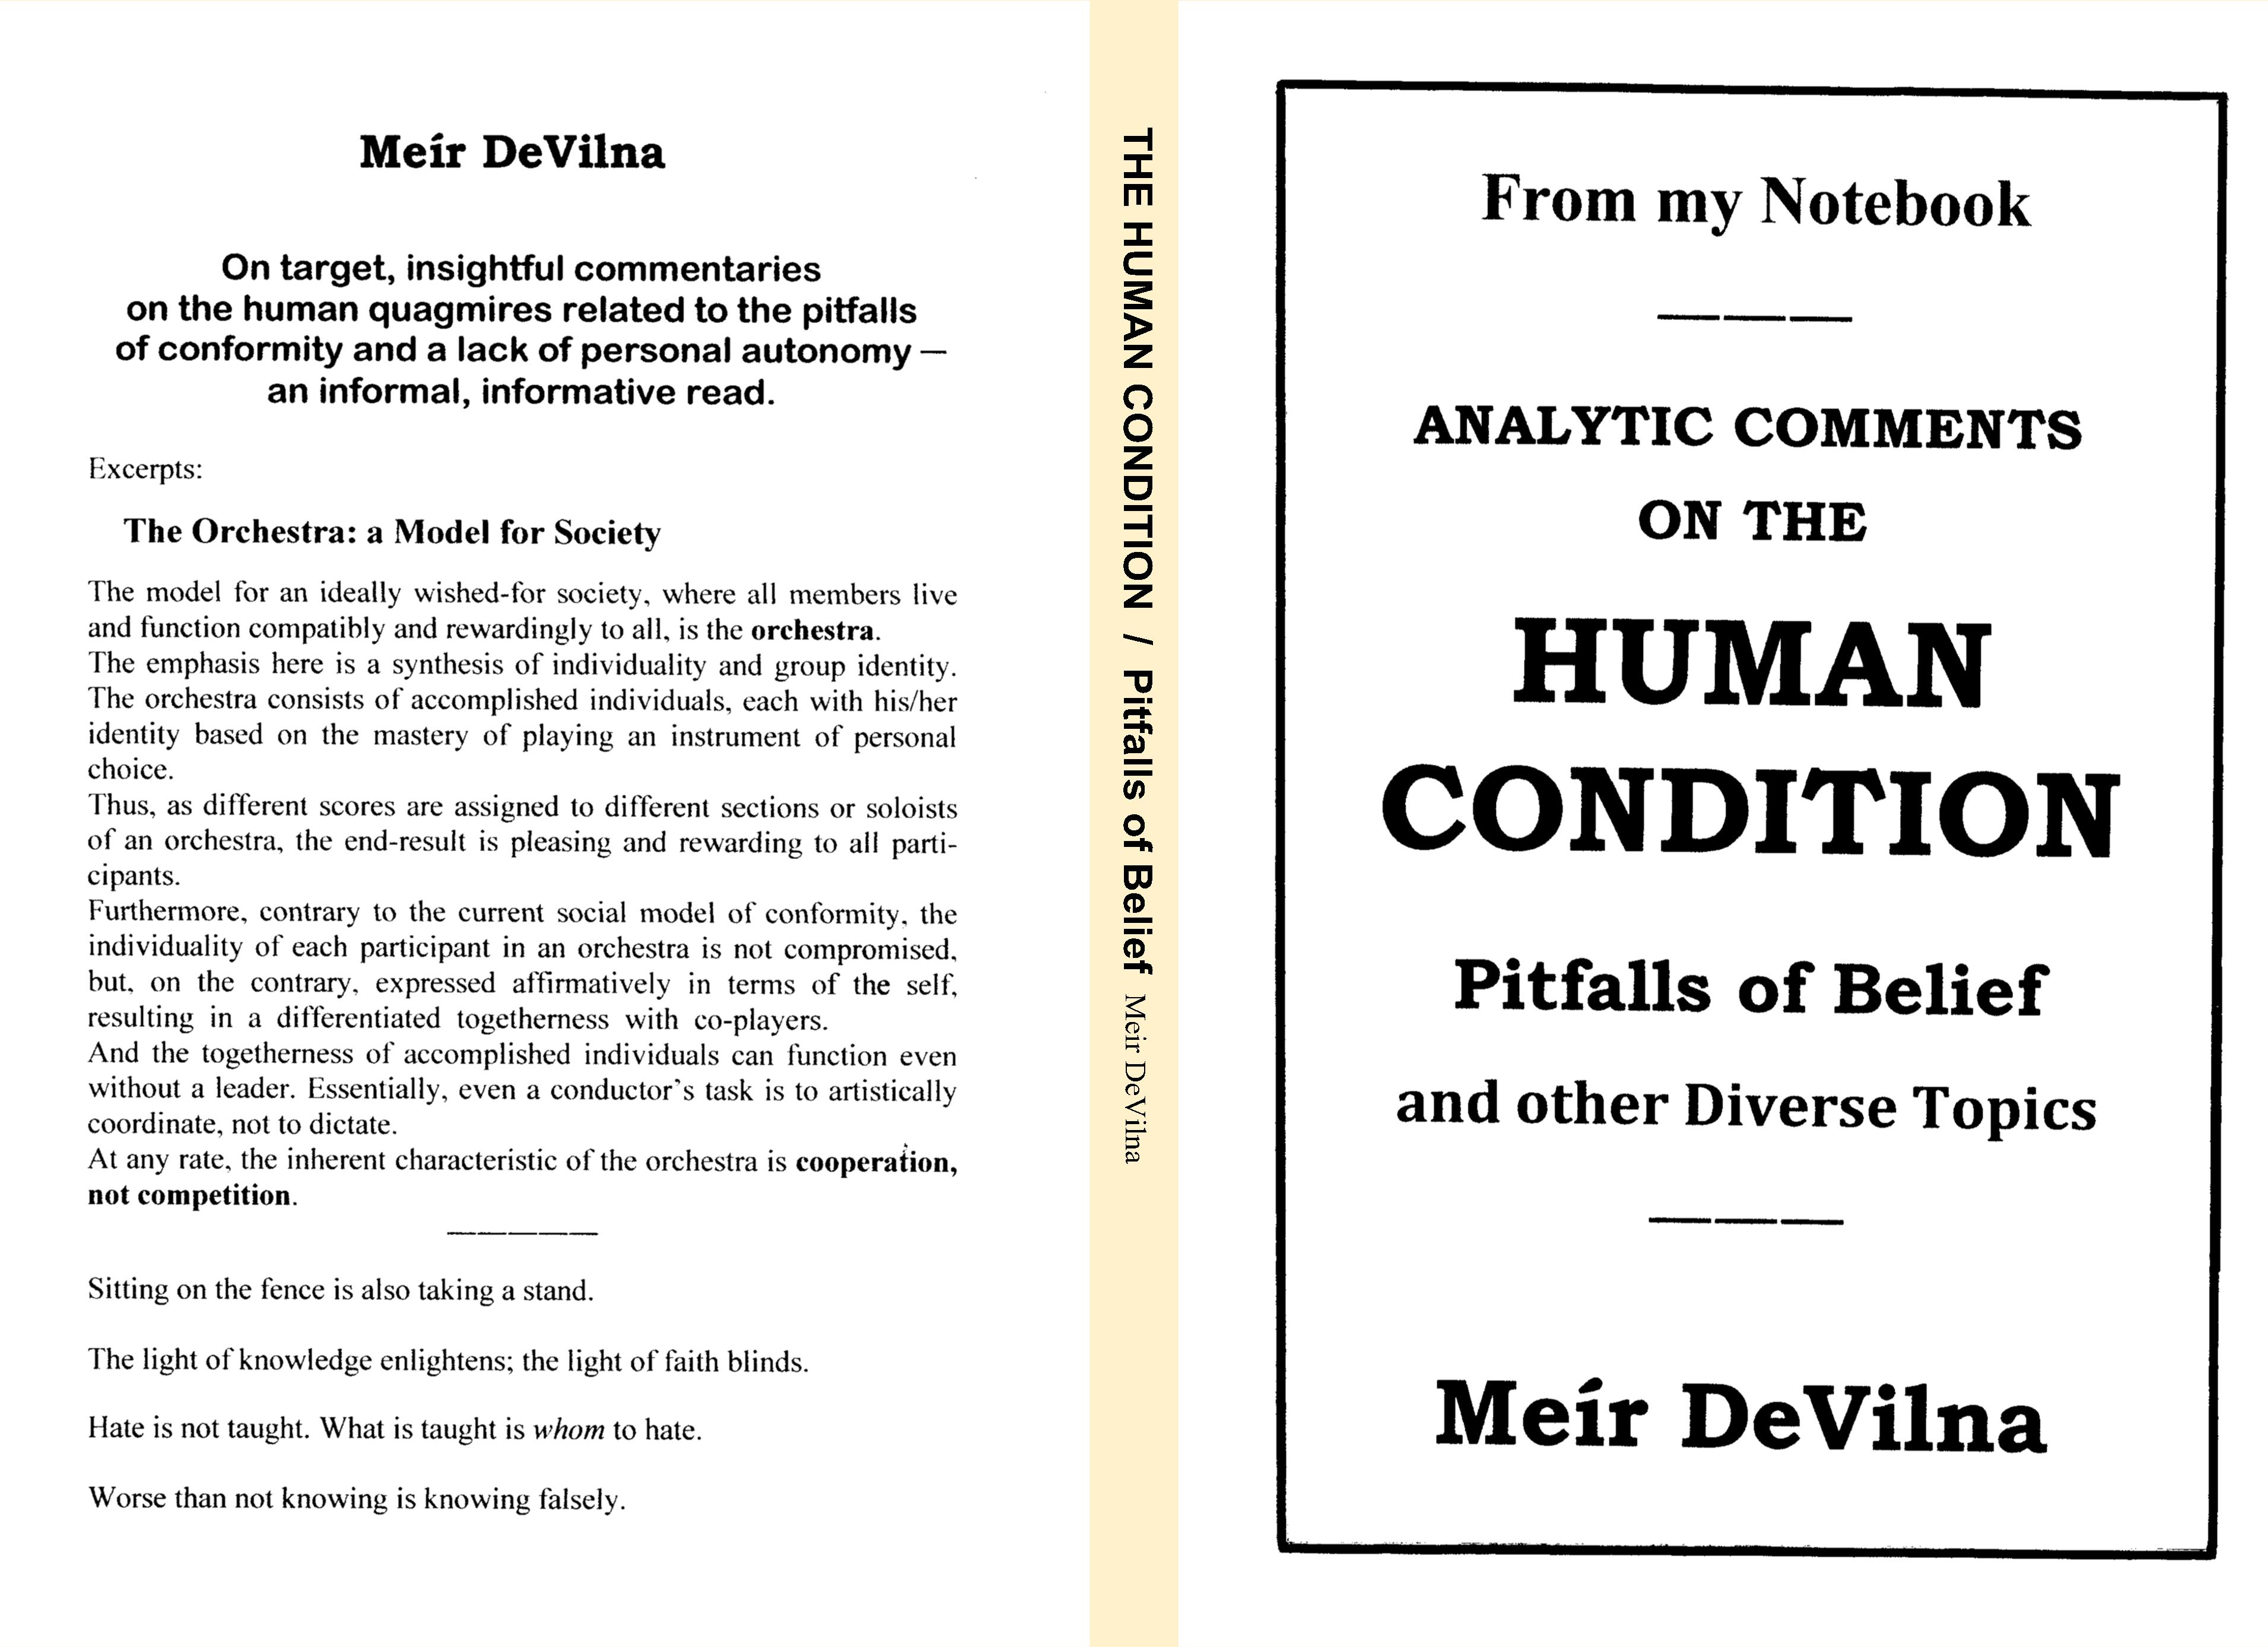 From my Notebook Analytic Comments on the Human Condition Pitfalls of Belief cover image